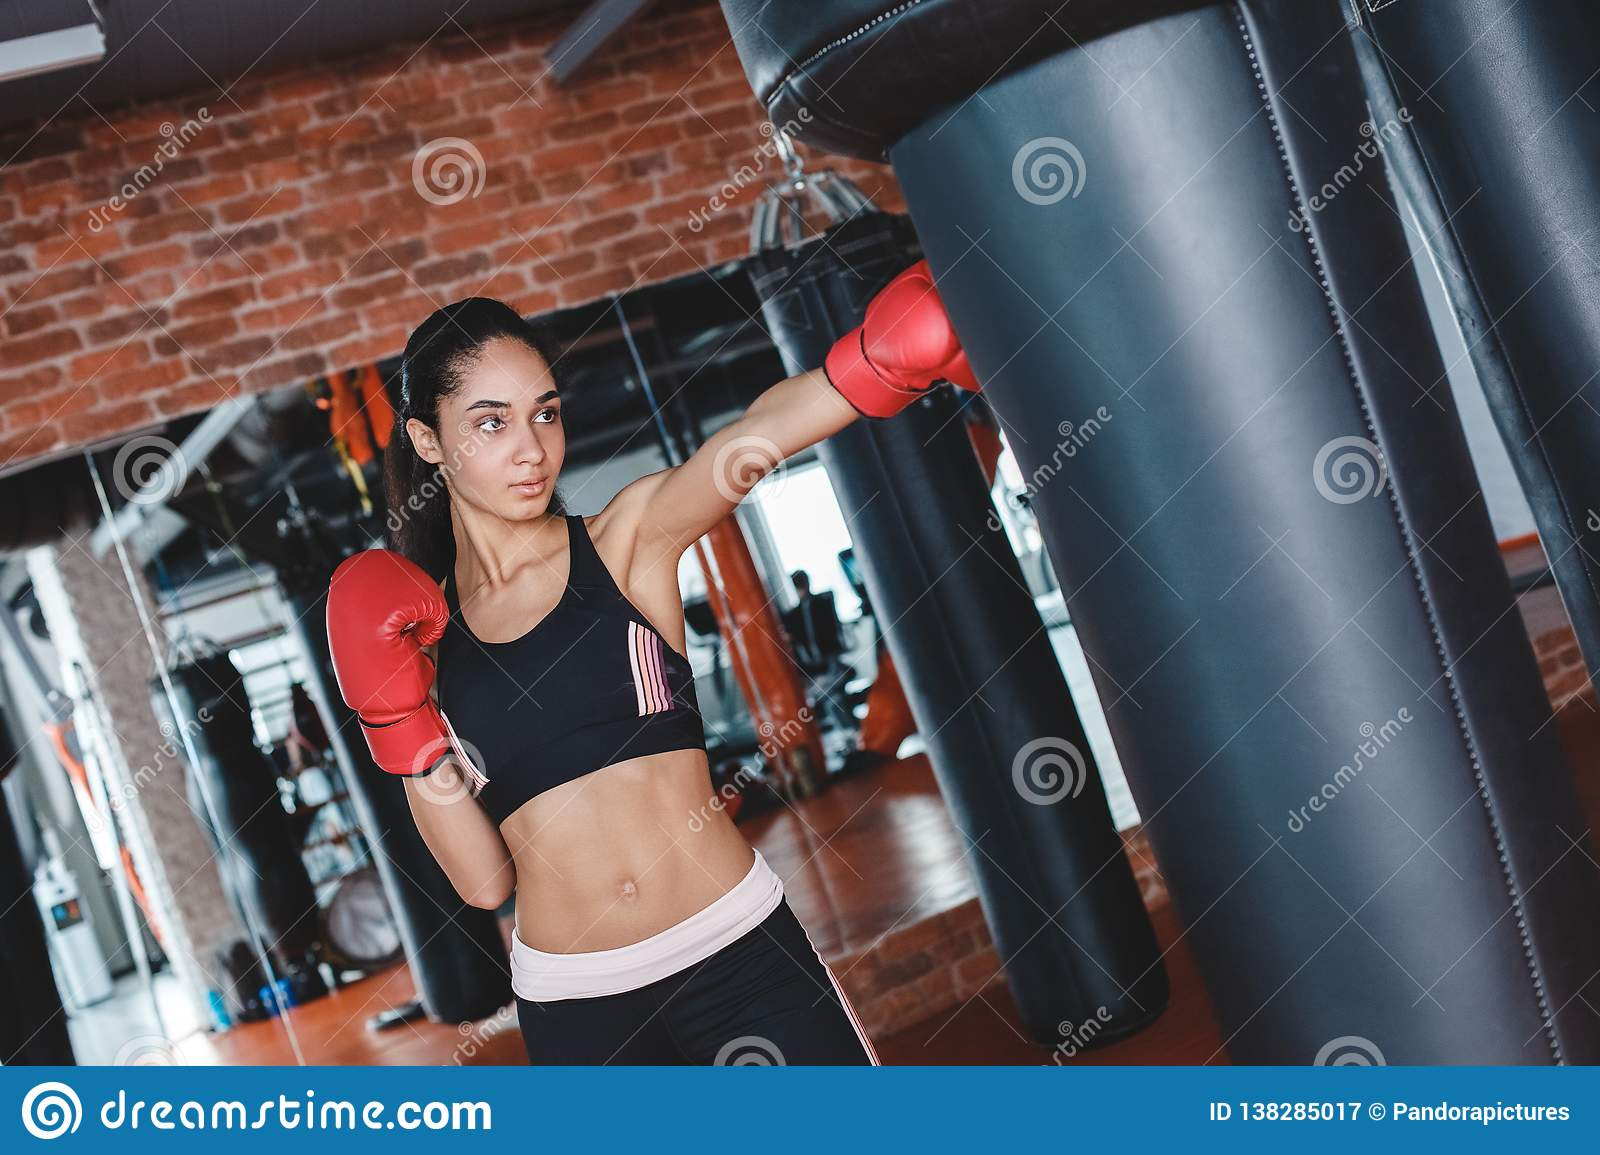 Young woman in boxing gloves in gym standing kicking punching bag concentrated